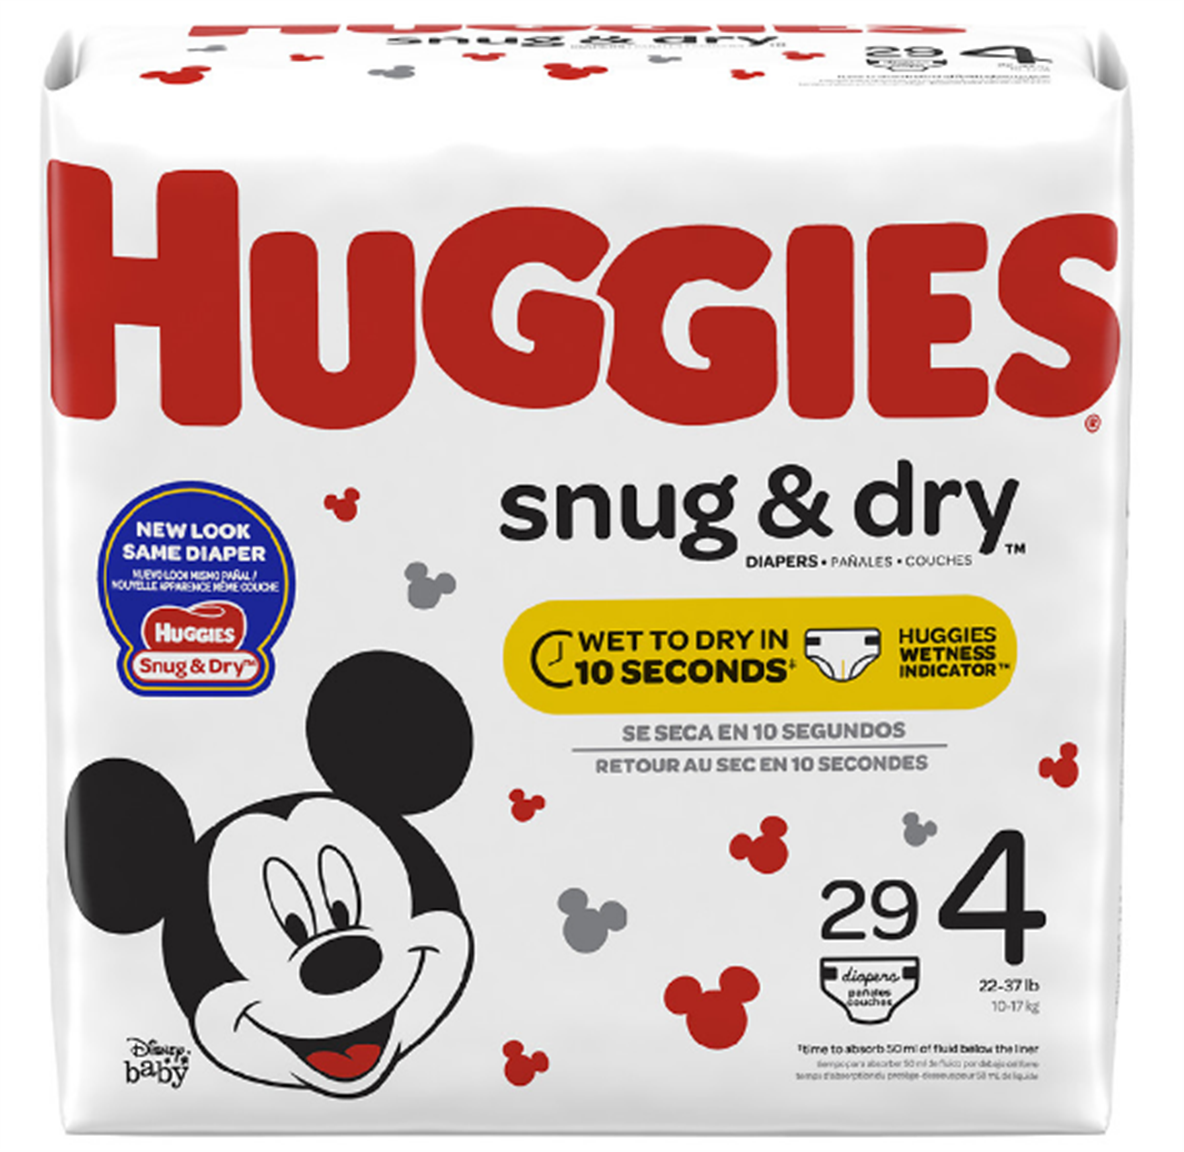 Huggies Snug and Dry Diapers, Jumbo Pack Only $2.49 Each at Publix